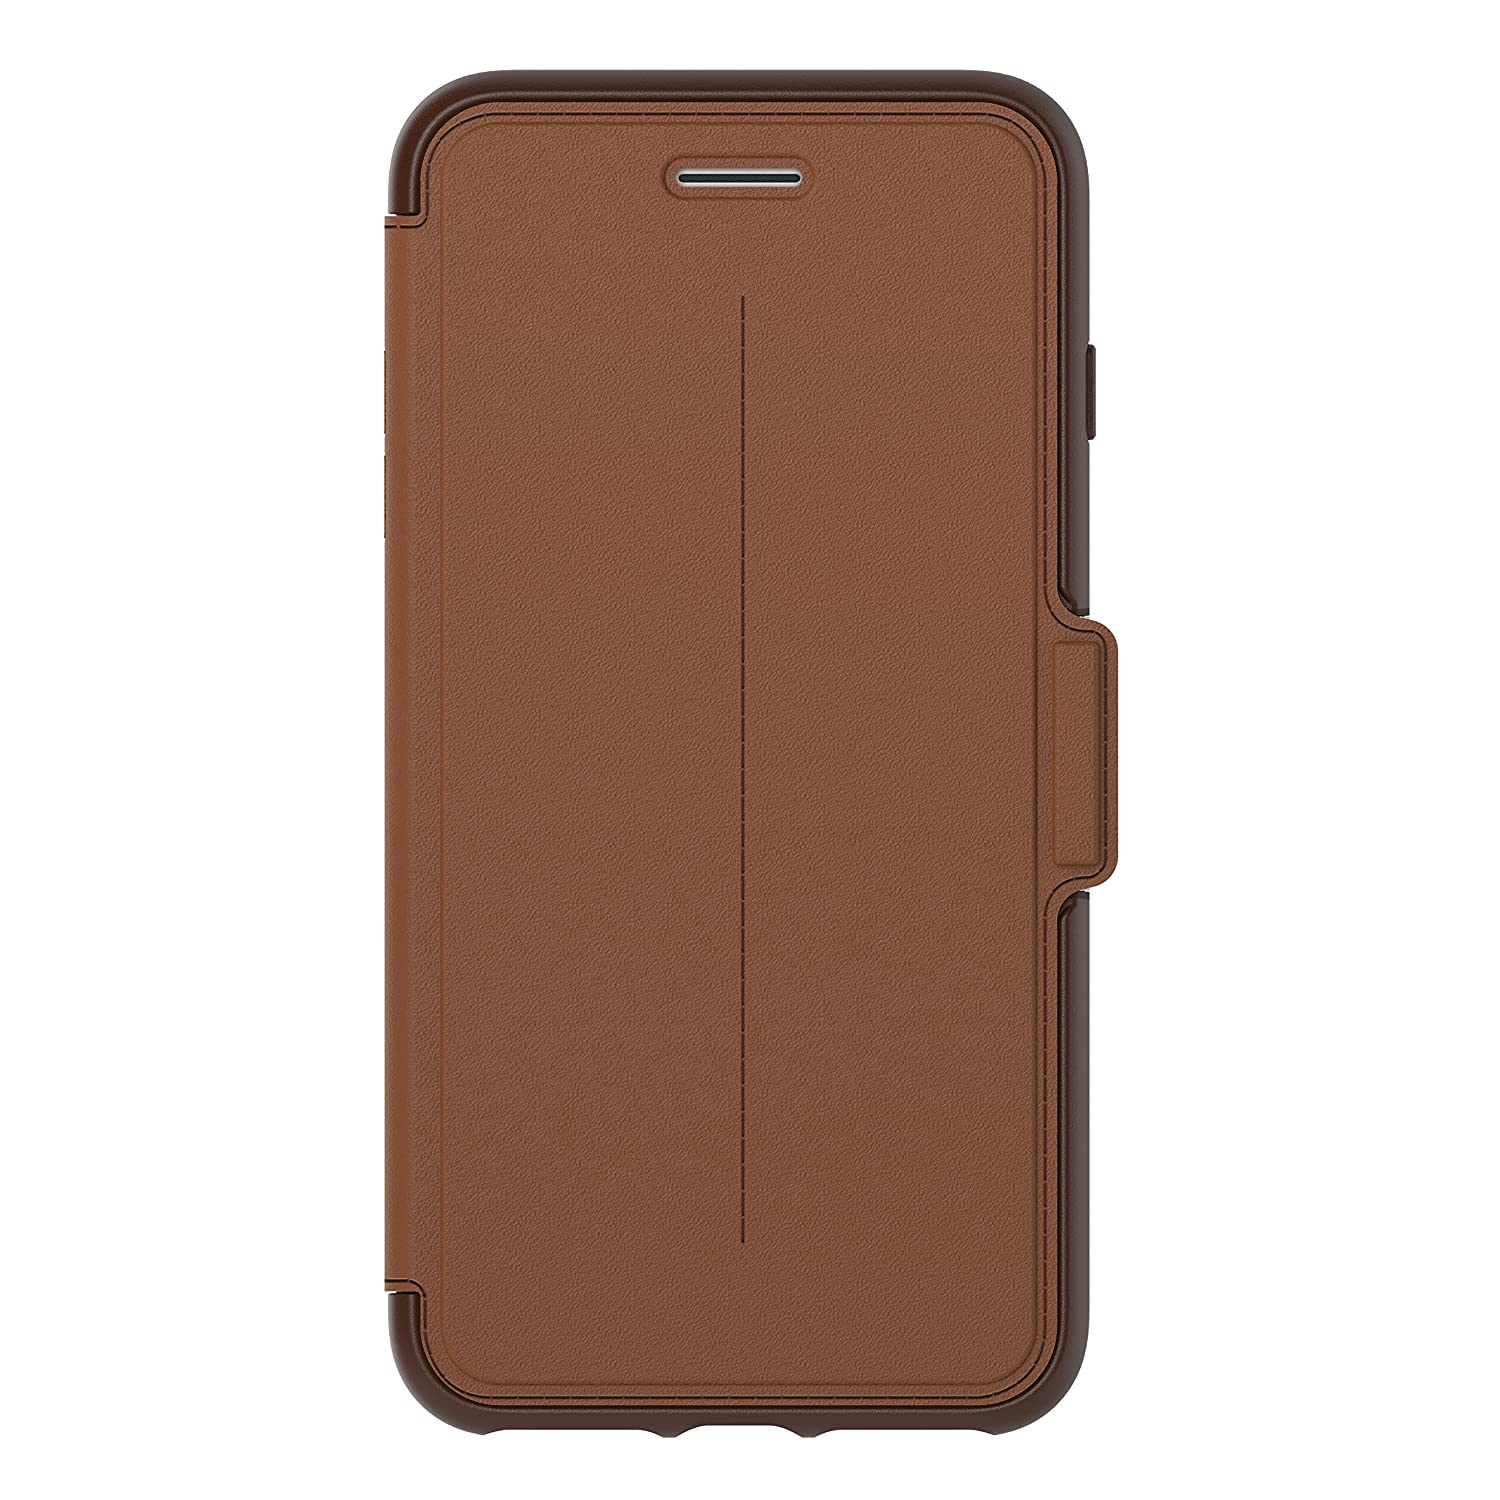 Otterbox Strada Series Case For Iphone 8 Plus 7 Original Samsung Clear Cover Casing Galaxy S8 Biru Only Burnt Saddle Chapshair Leather Cell Phones Accessories